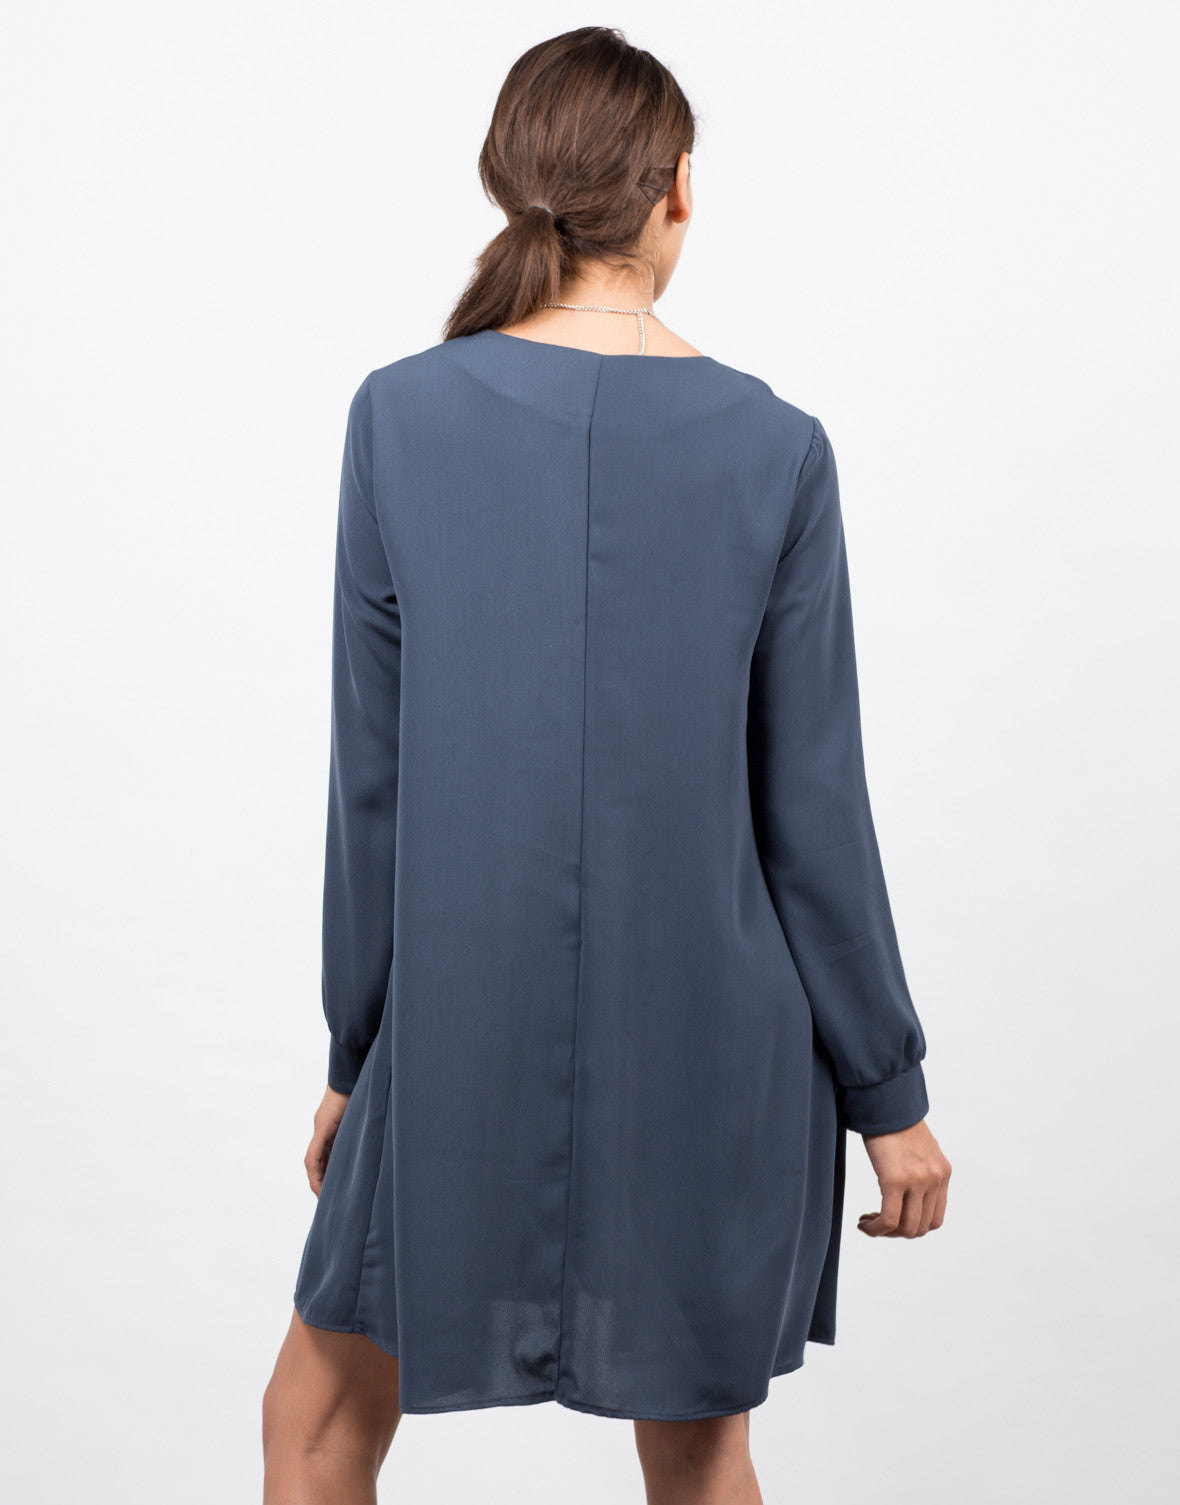 Back View of Woven Long Sleeve Shift Dress